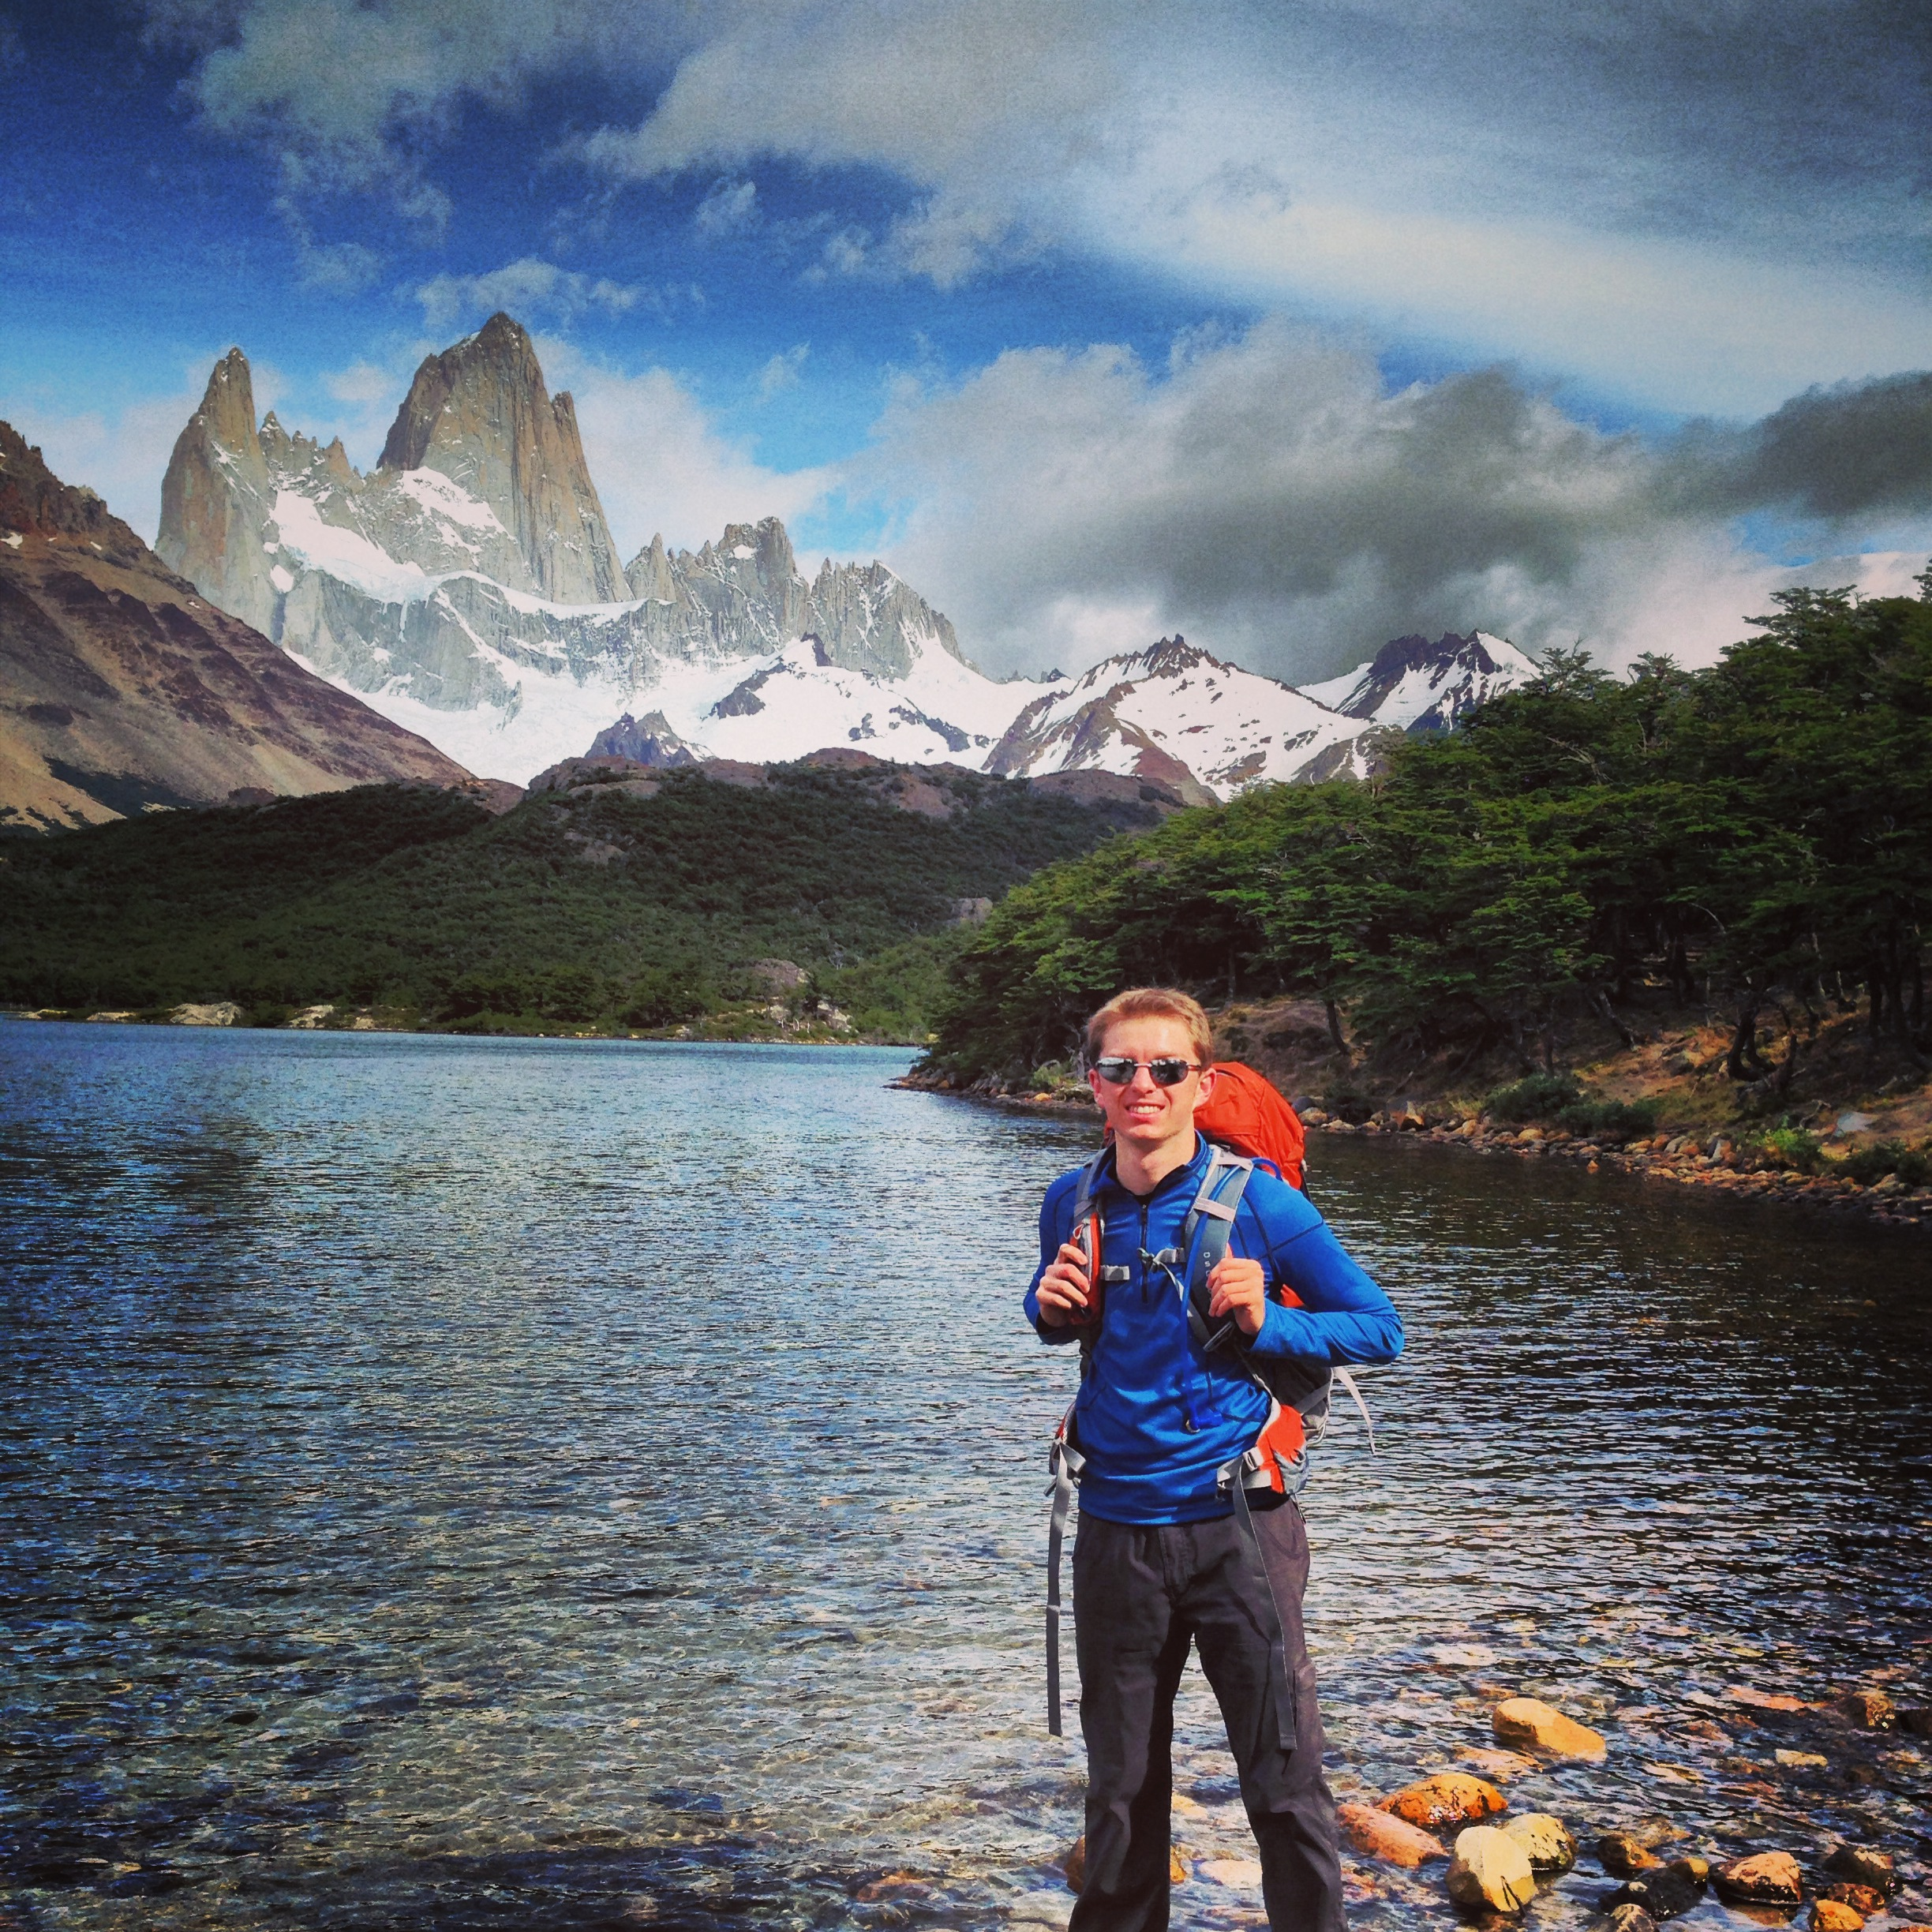 Hiking the Fitz Roy...not drenched...because it hadn't started raining yet. (Patagonia, Argentina 2013)